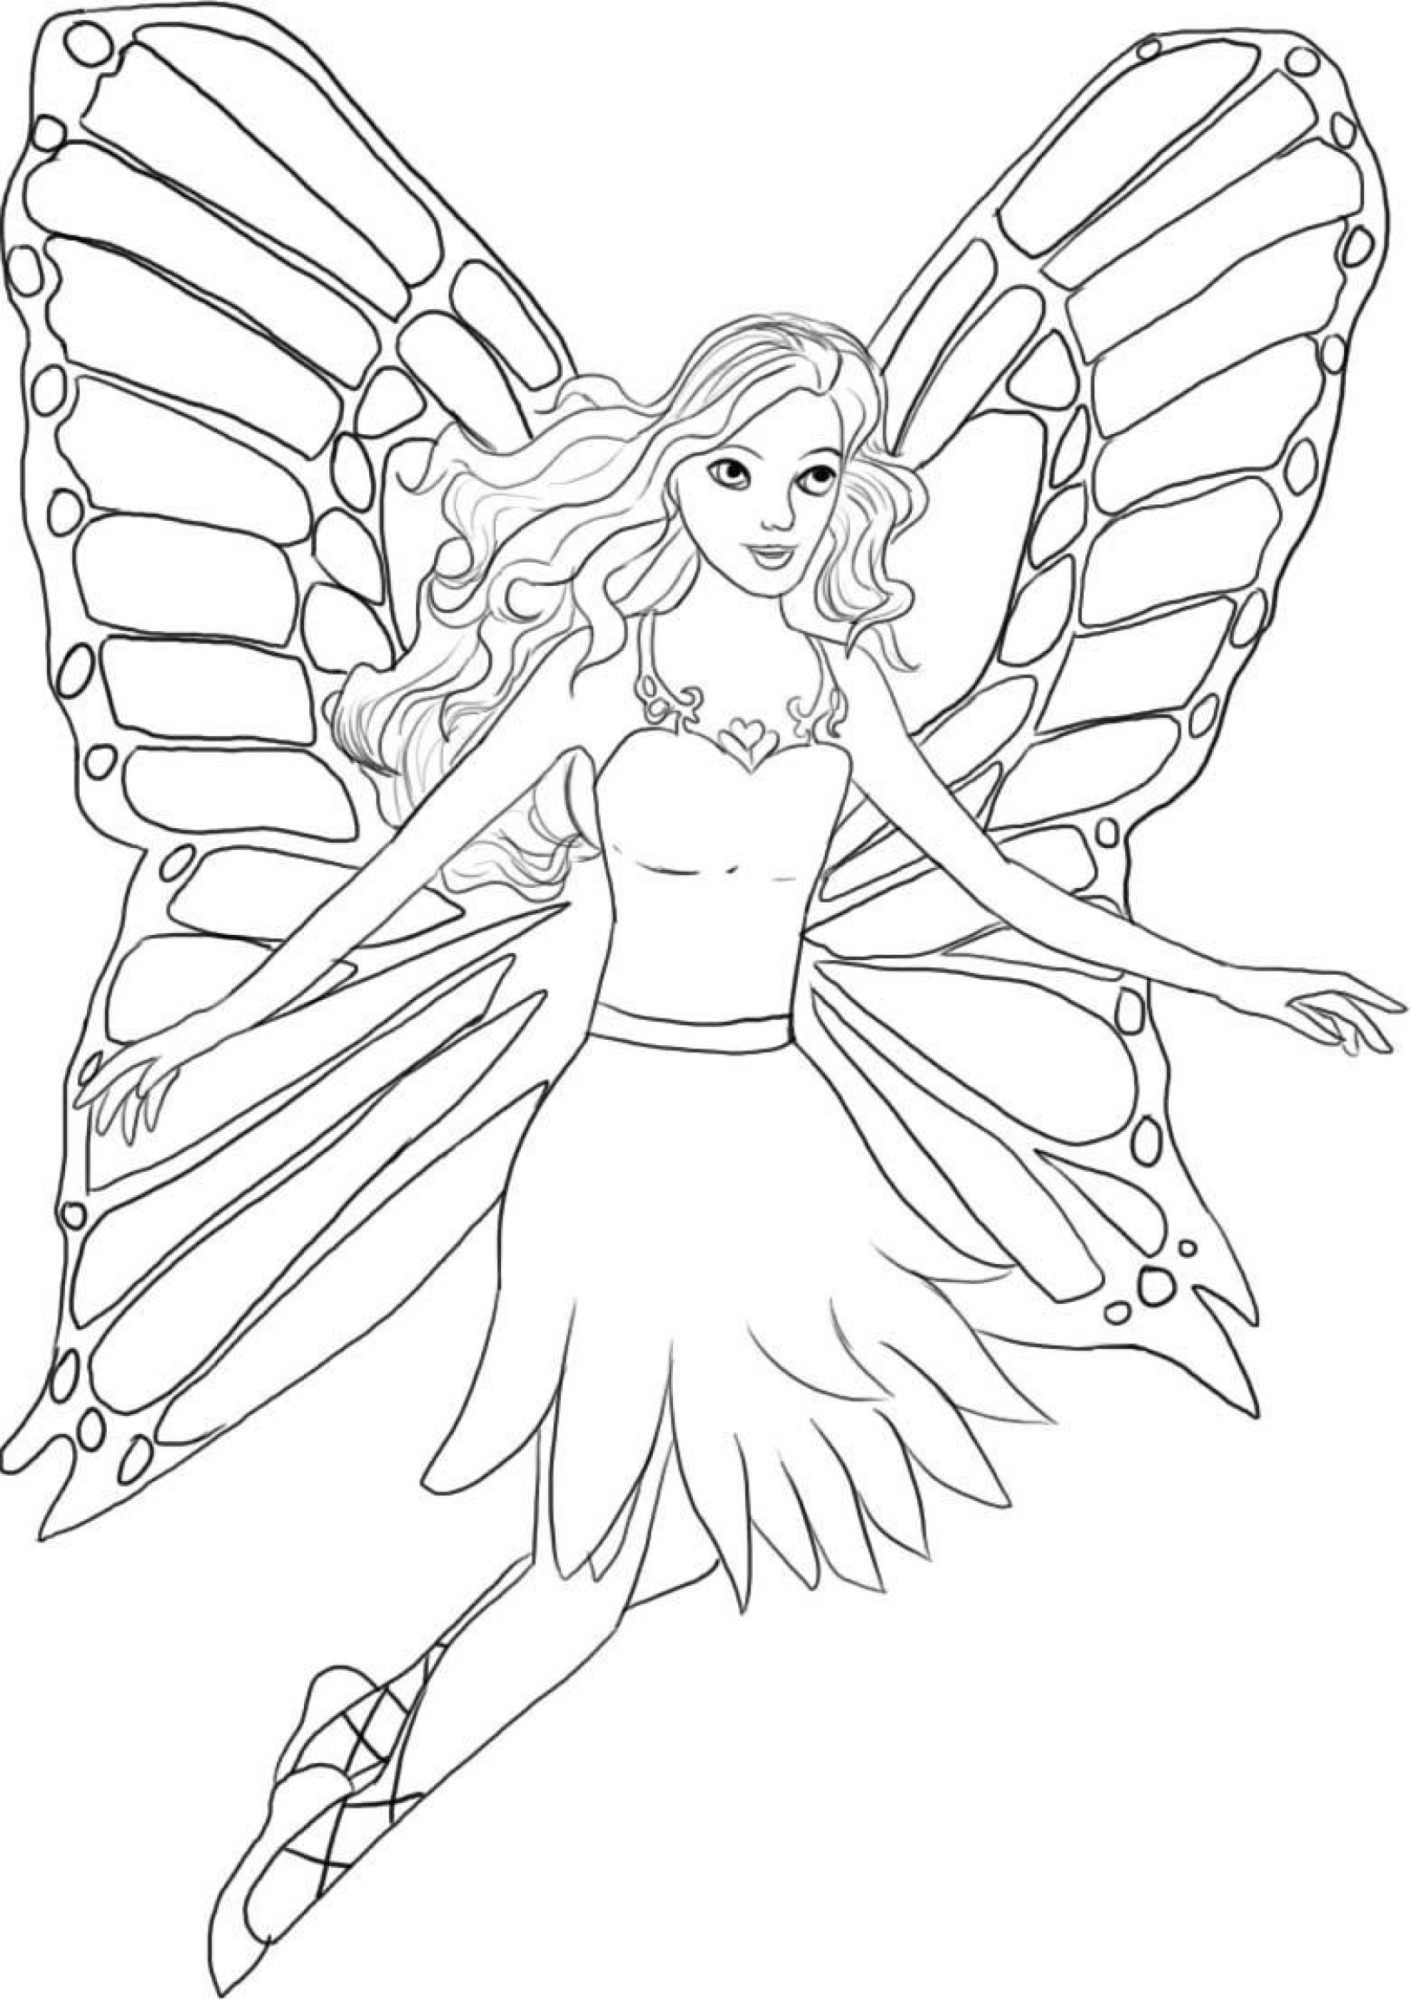 Childrens dental coloring pages - Coloring Pages